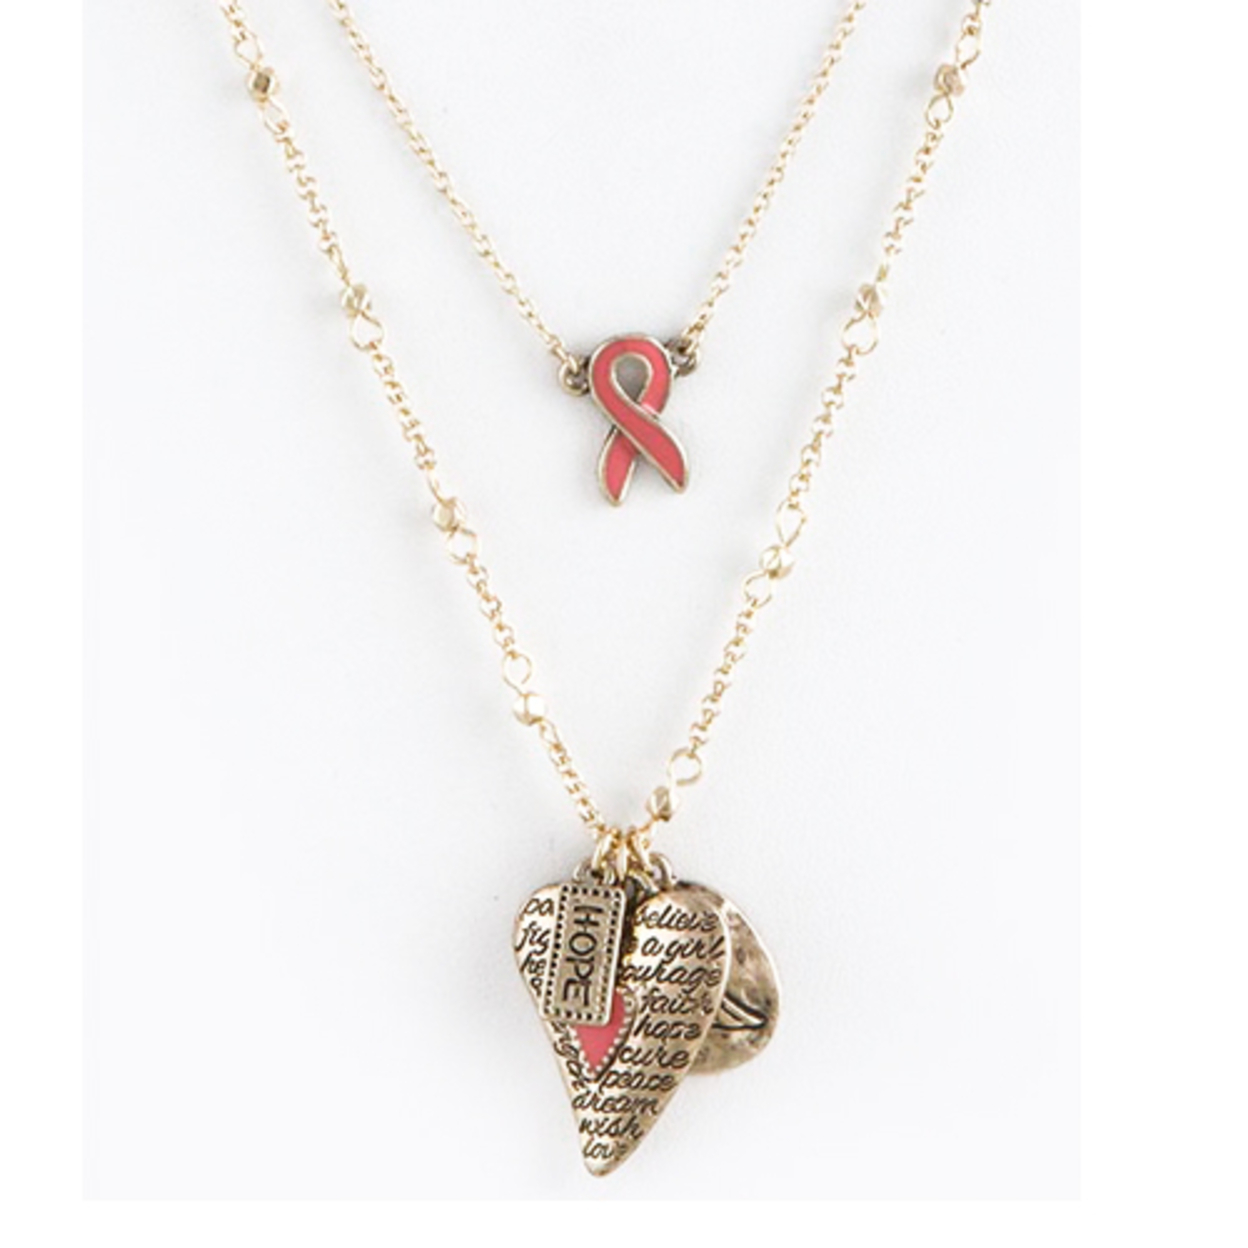 Breast Cancer Awareness Necklaces Collection - Etched Heart Layered Necklace in Gold 55fc8ea94d3d6f1c038b4acd